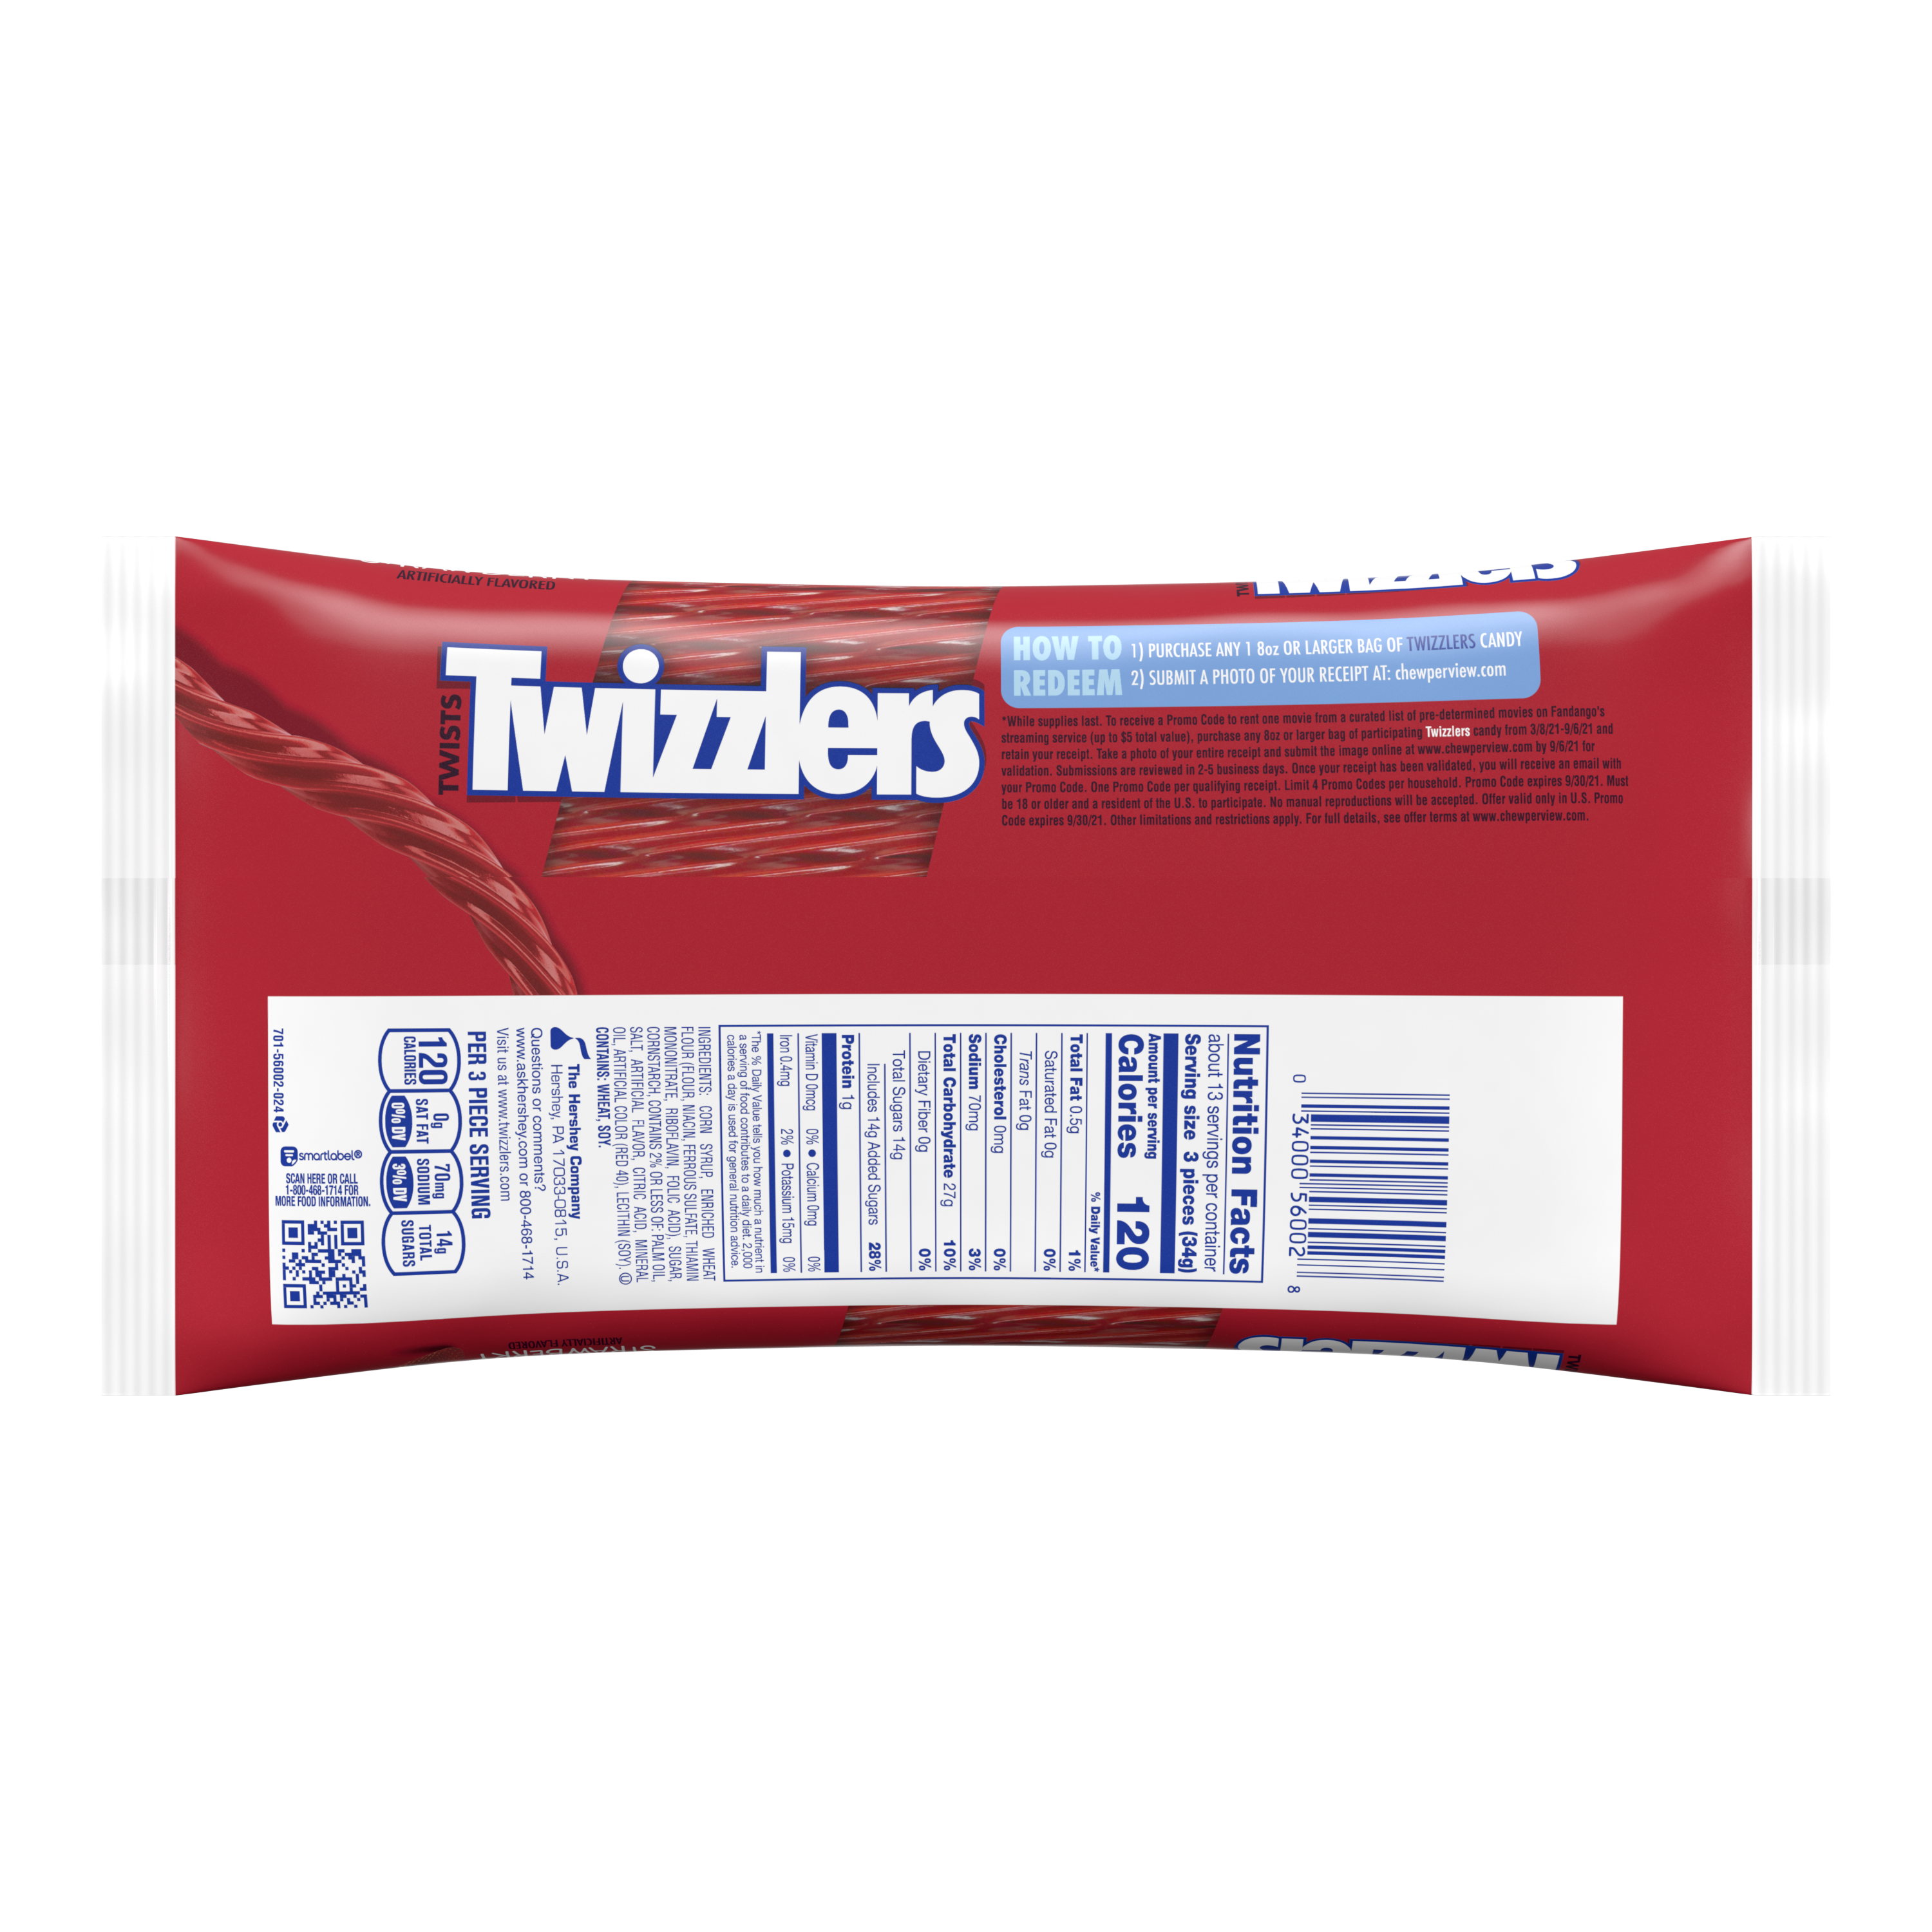 TWIZZLERS Twists Strawberry Flavored Candy, 16 oz bag - Back of Package